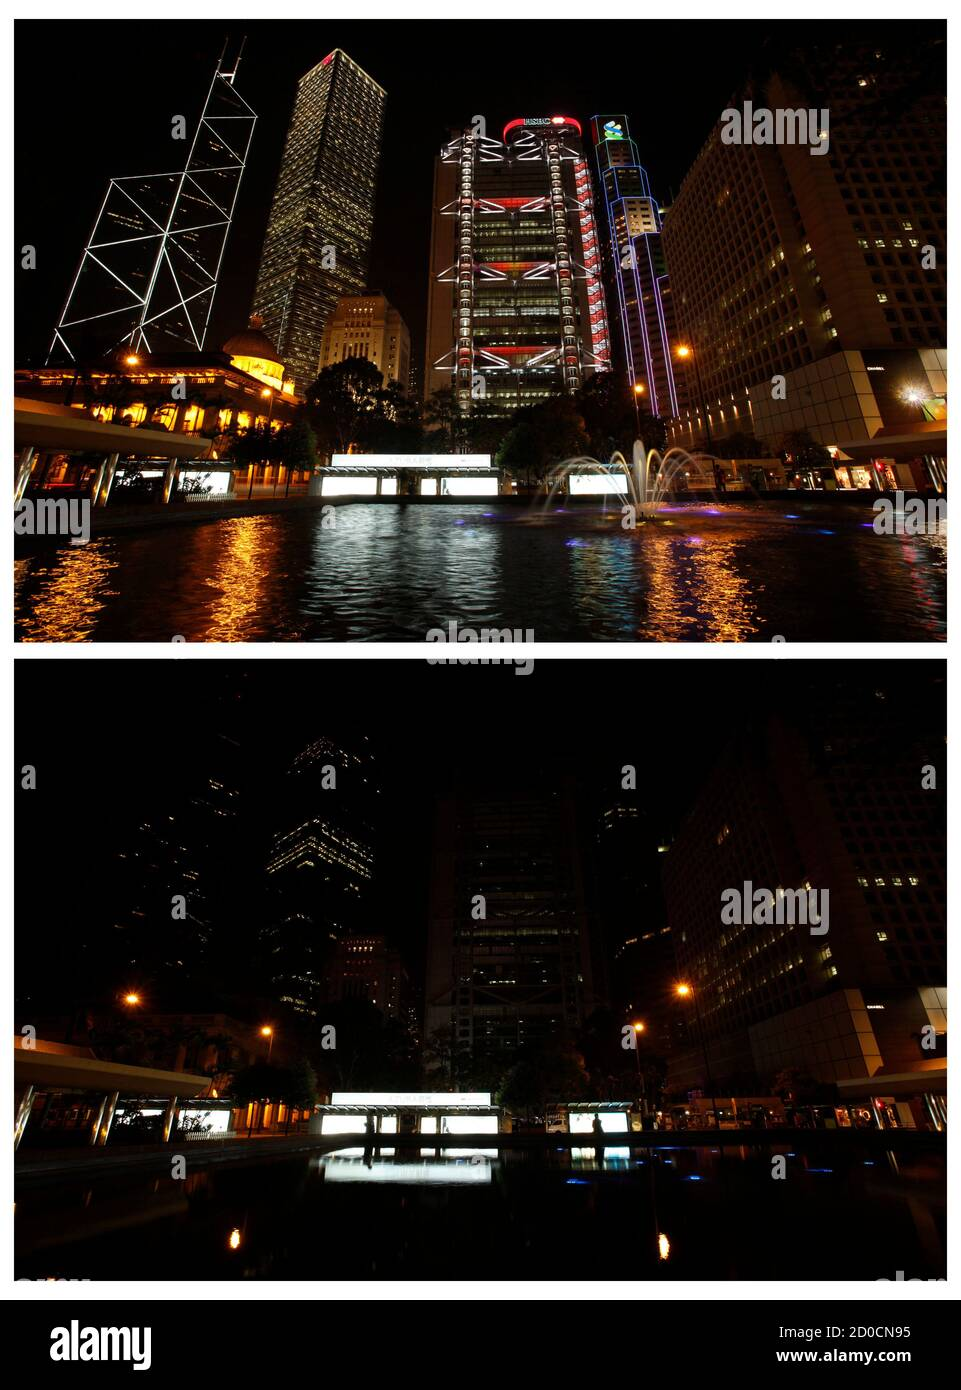 A combination picture shows Hong Kong's central financial district's (L-R) Bank of China Tower, Cheung Kong Centre, HSBC headquarters, Standard Chartered Bank and Legislative Council before (top) and during Earth Hour, March 26, 2011. Lights started going off around the world on Saturday in a show of support for renewable energy, given added poignancy by Japan's nuclear disaster which raises doubts about nuclear power as a possible solution. Landmarks in thousands of cities, from Sydney Harbour Bridge to the world's tallest building, the Burj Khalifa in Dubai, will turn off the power for Earth Stock Photo